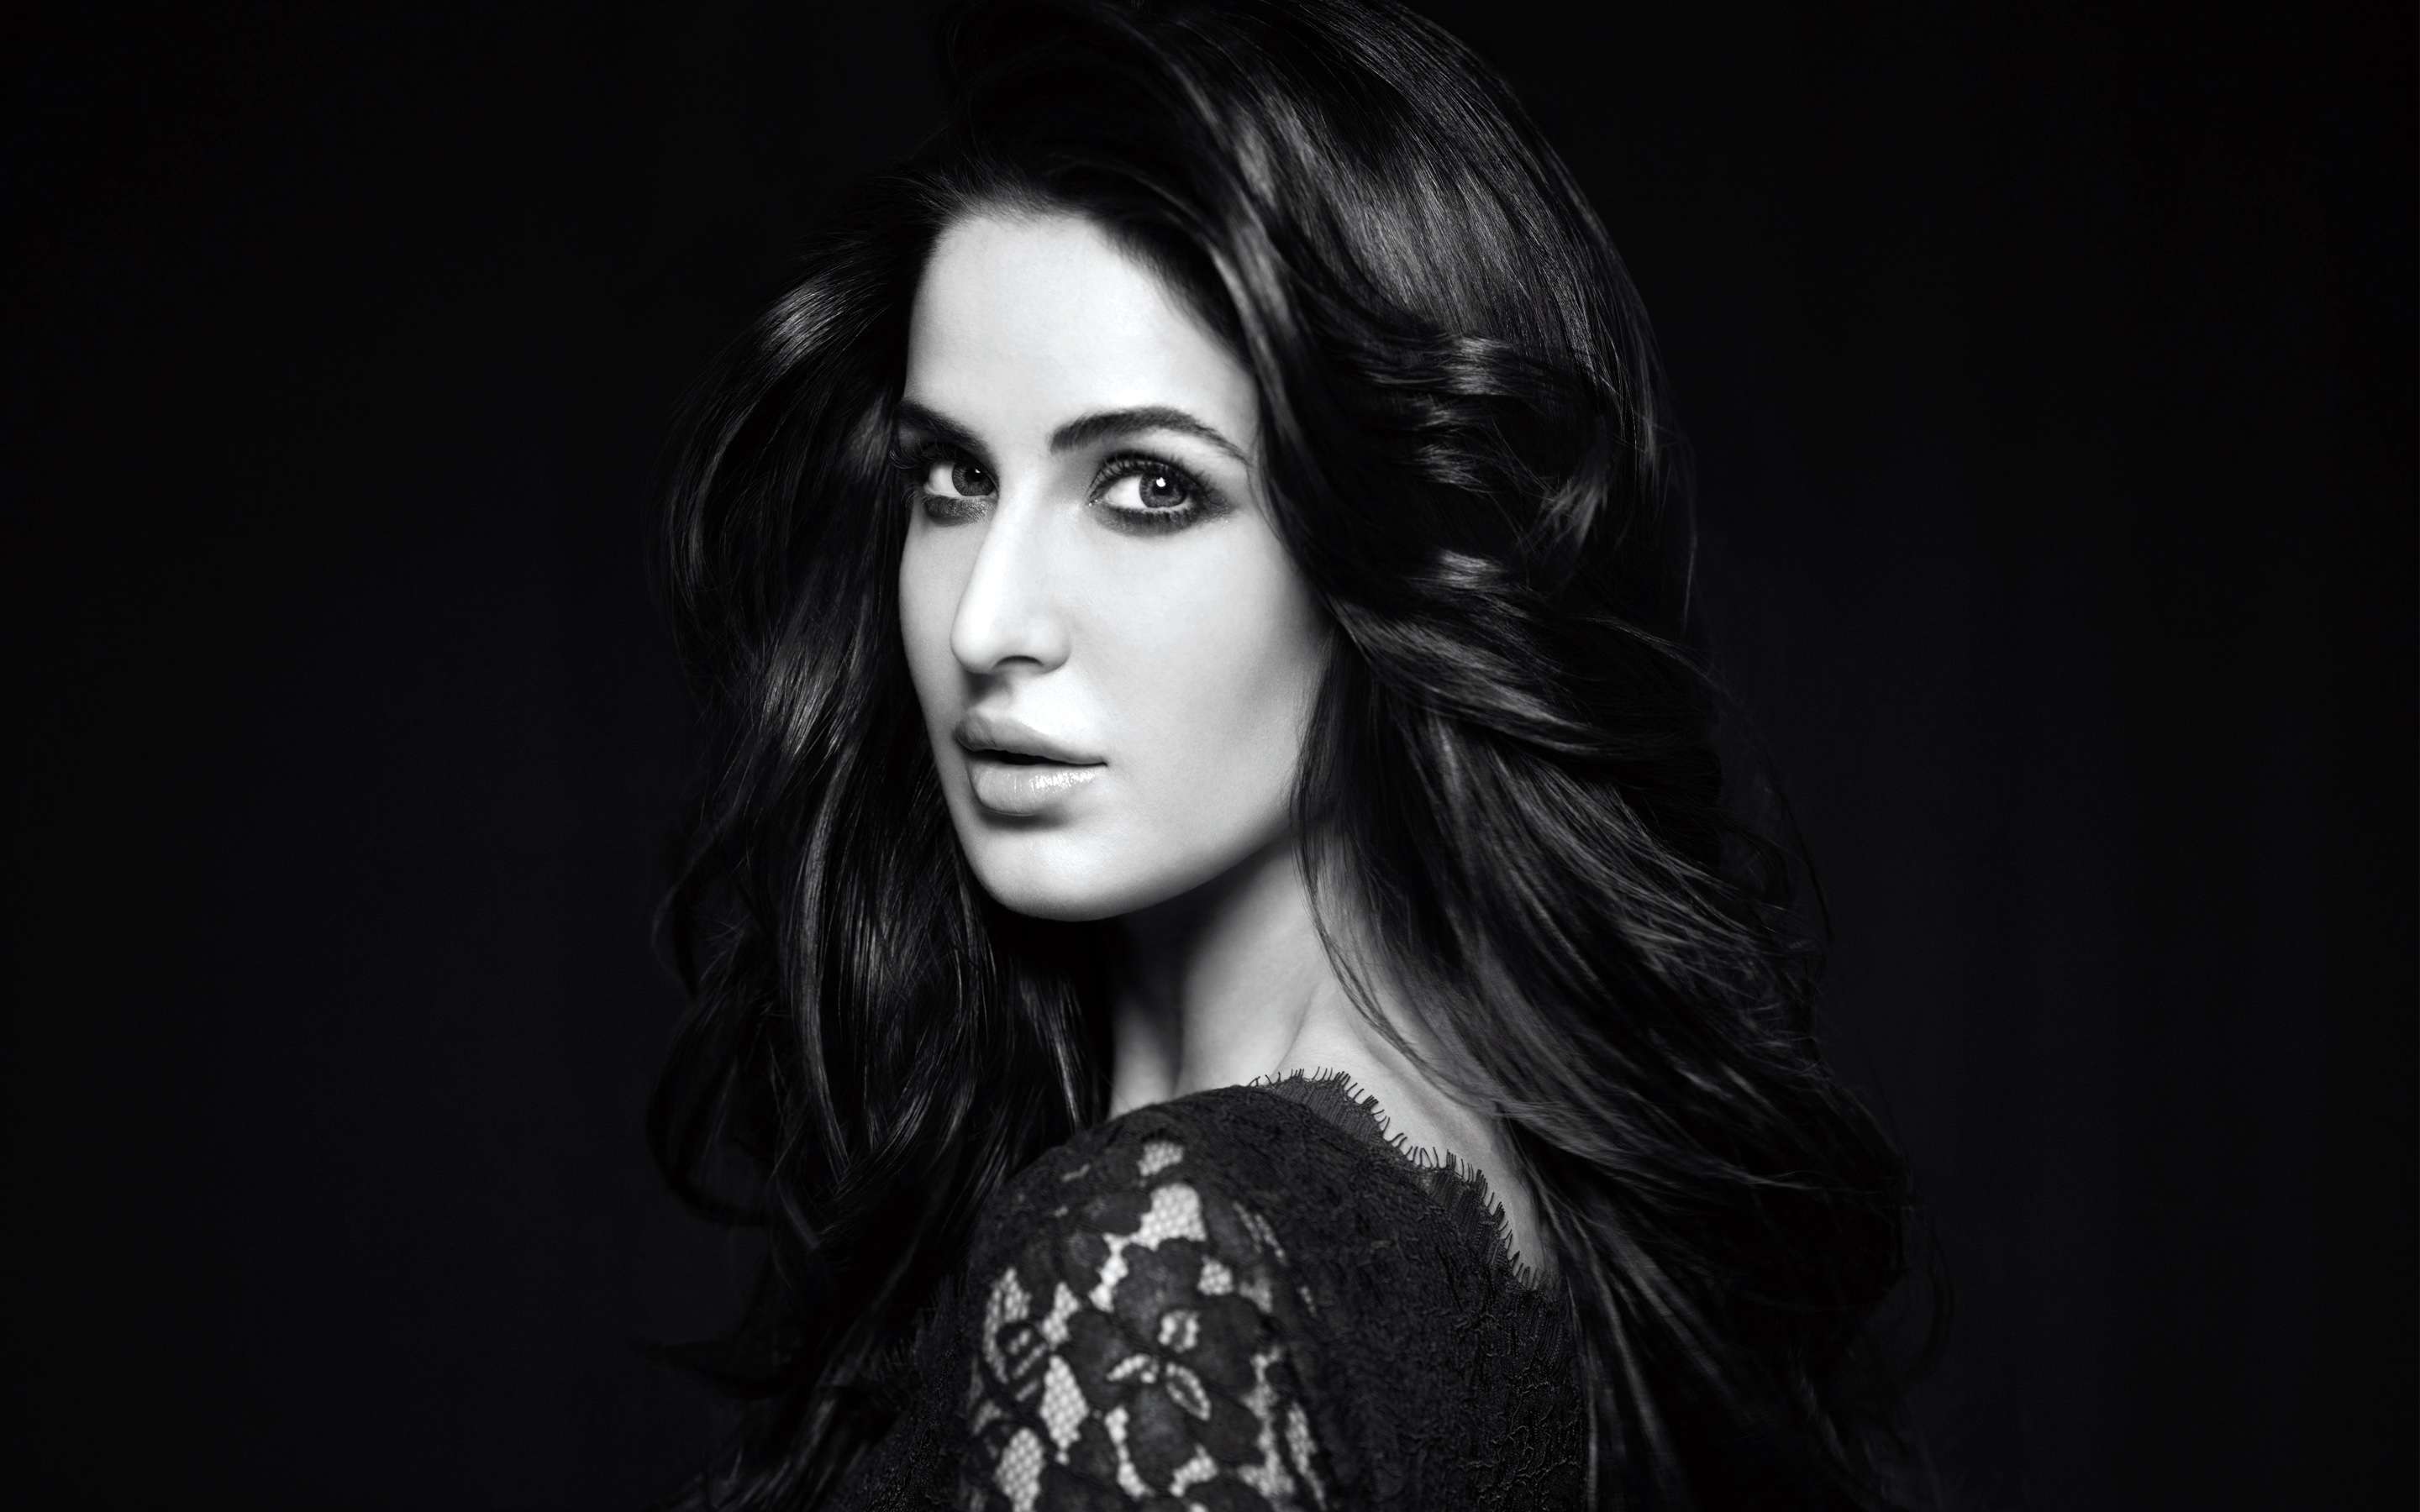 Katrina Kaif 2018 Wallpapers